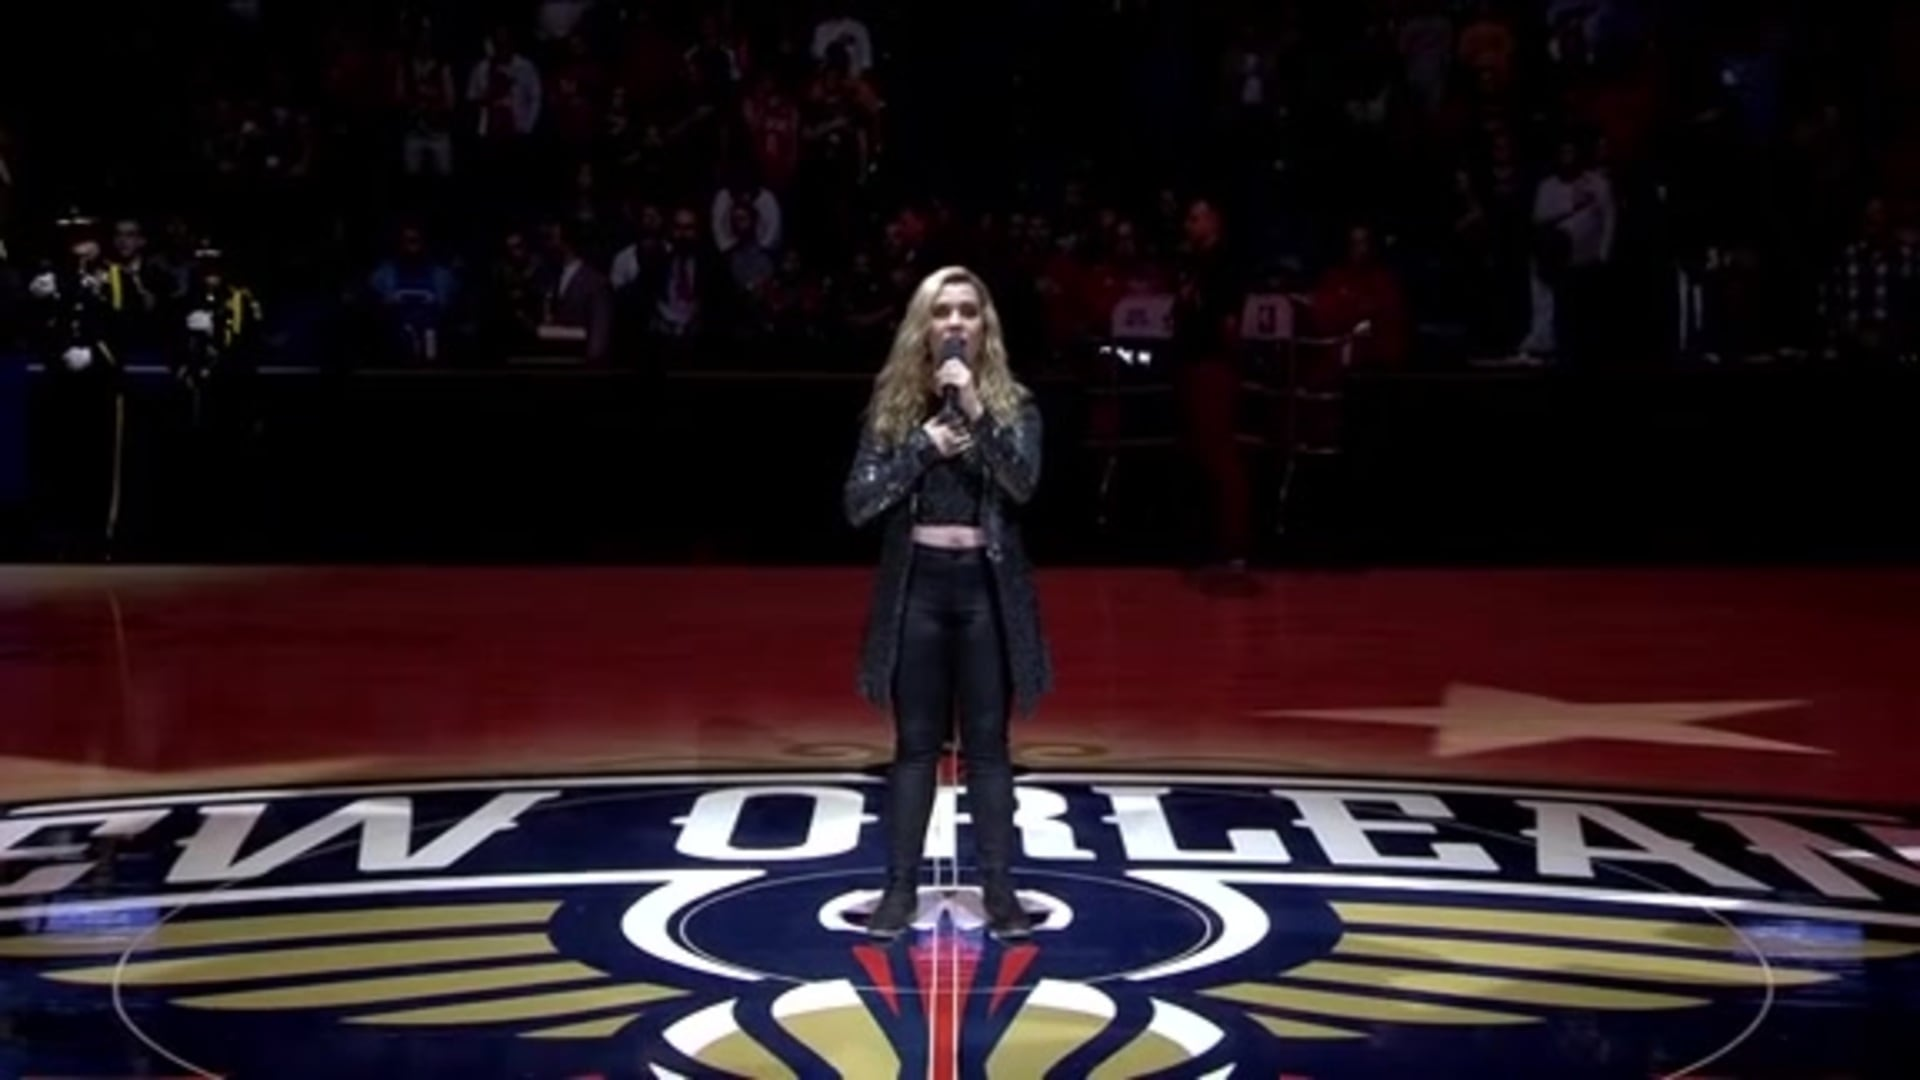 Entertainment: National Anthem performance by Jenna Hunts – January 18 vs. L.A. Clippers